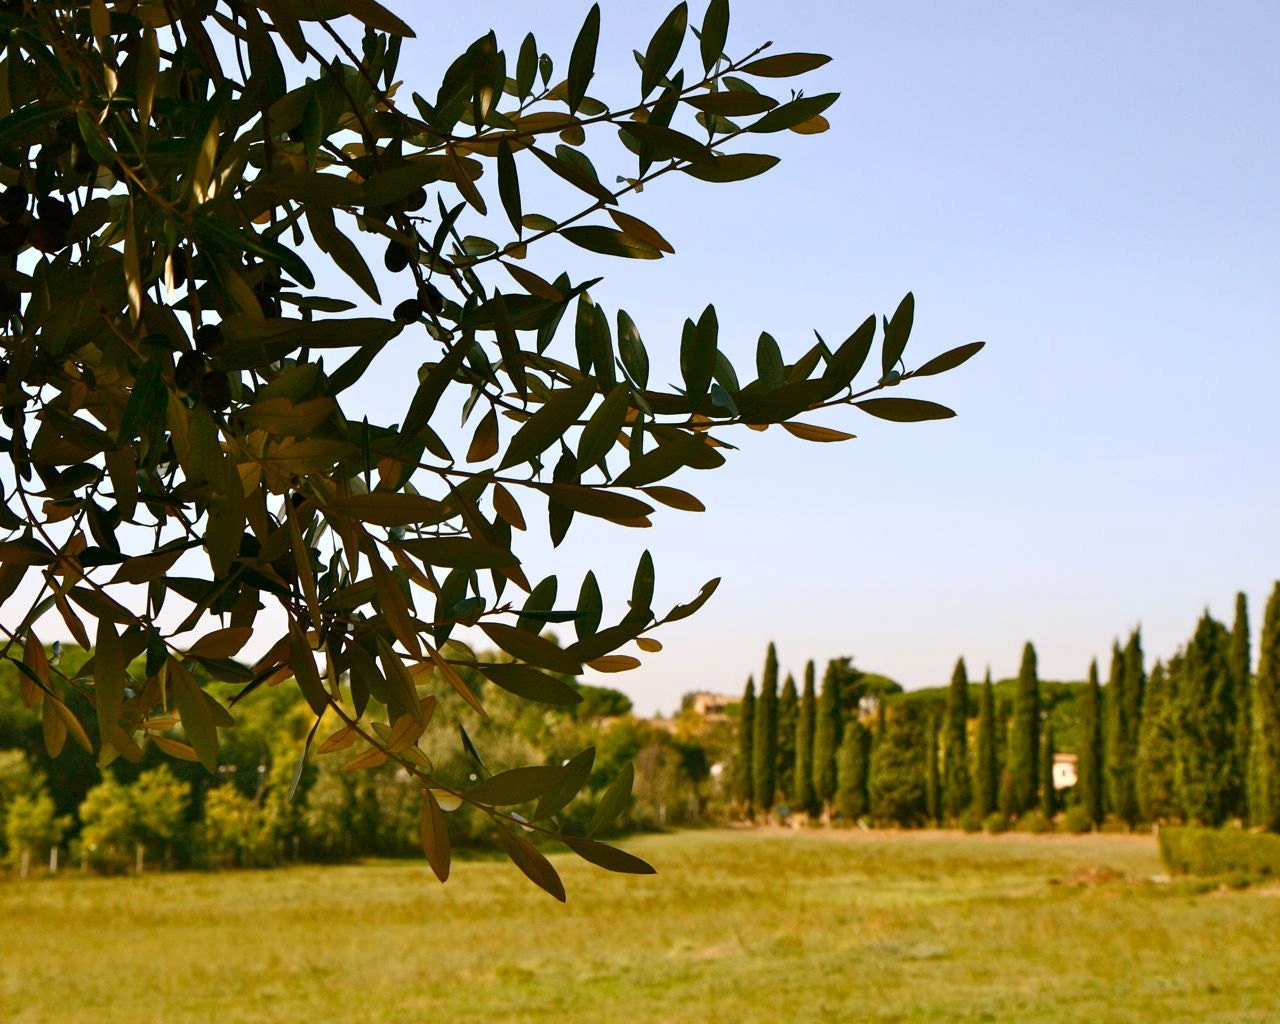 Olive Tree Photograph Rome Italy Landscape by VitaNostra on Etsy